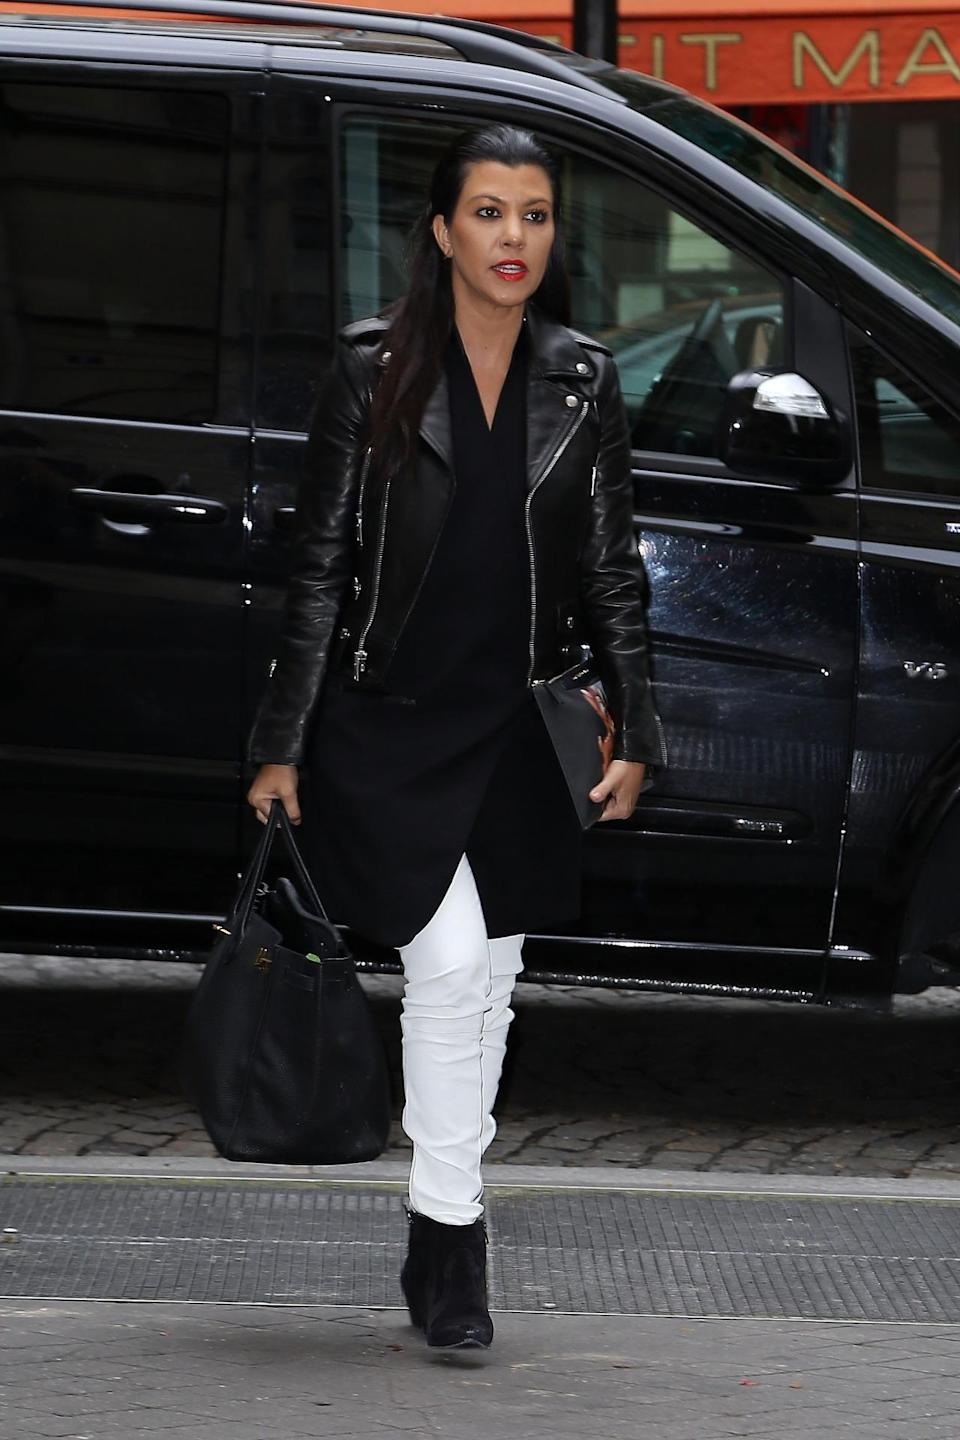 """In 2014, Kourtney had already reached a place where she was eating well. After her morning workout, Kourt, even now, opts for """"hard-boiled eggs or my signature salad for lunch"""". But Kourtney also confessed that she thinks she needs """"to start including more protein after my workout."""""""